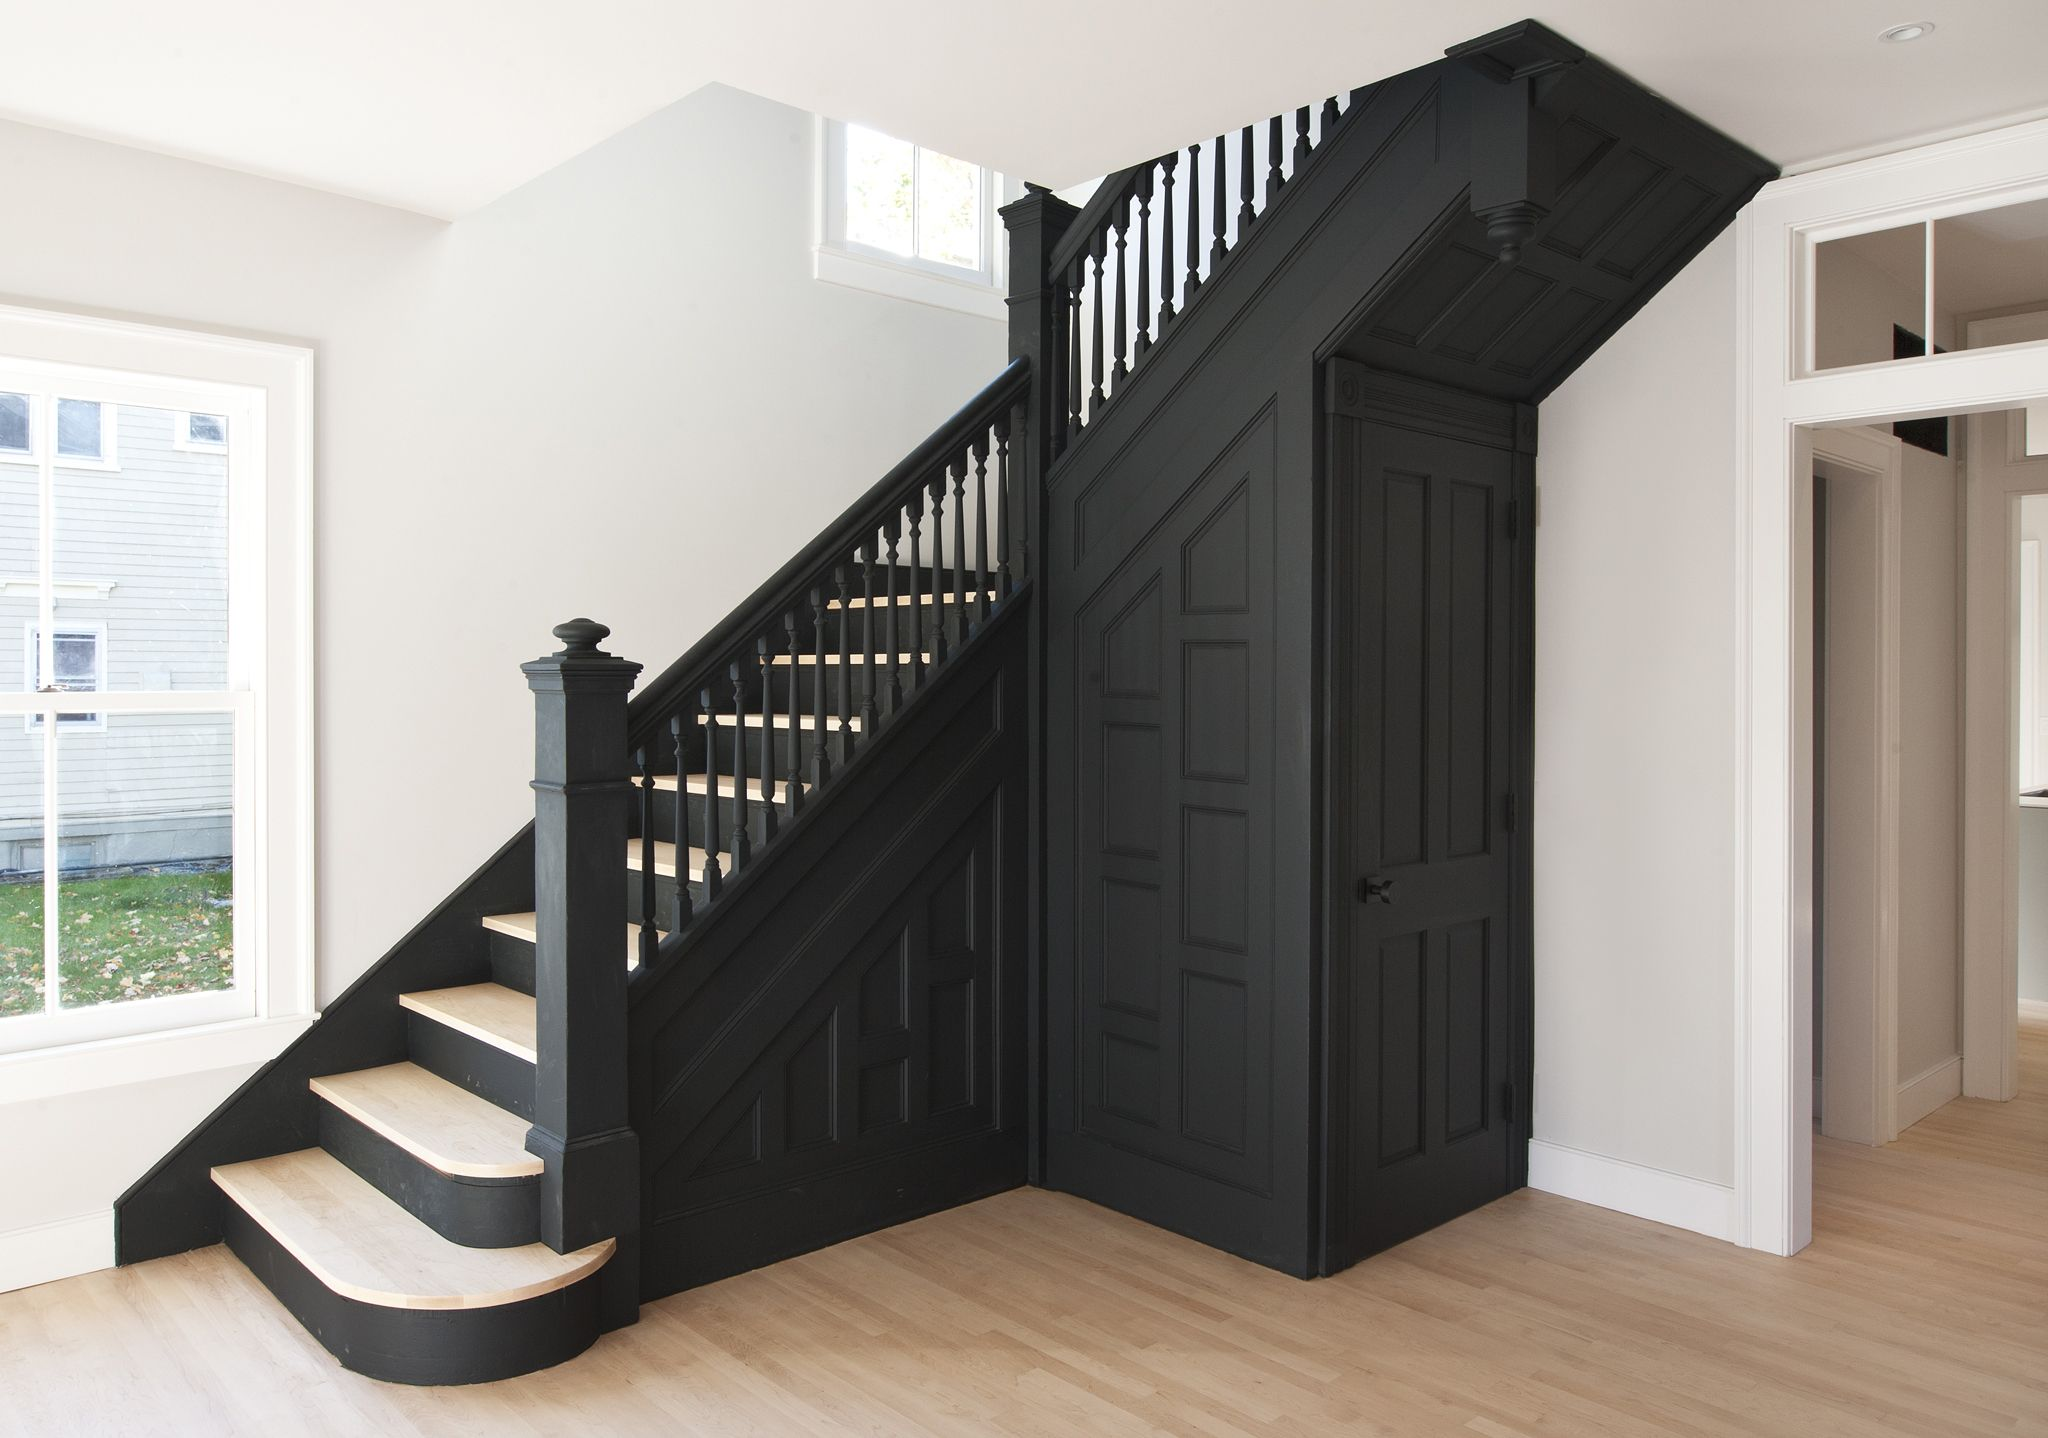 Historic Stair Painted Black In Modern Renovation Of Turn Of The